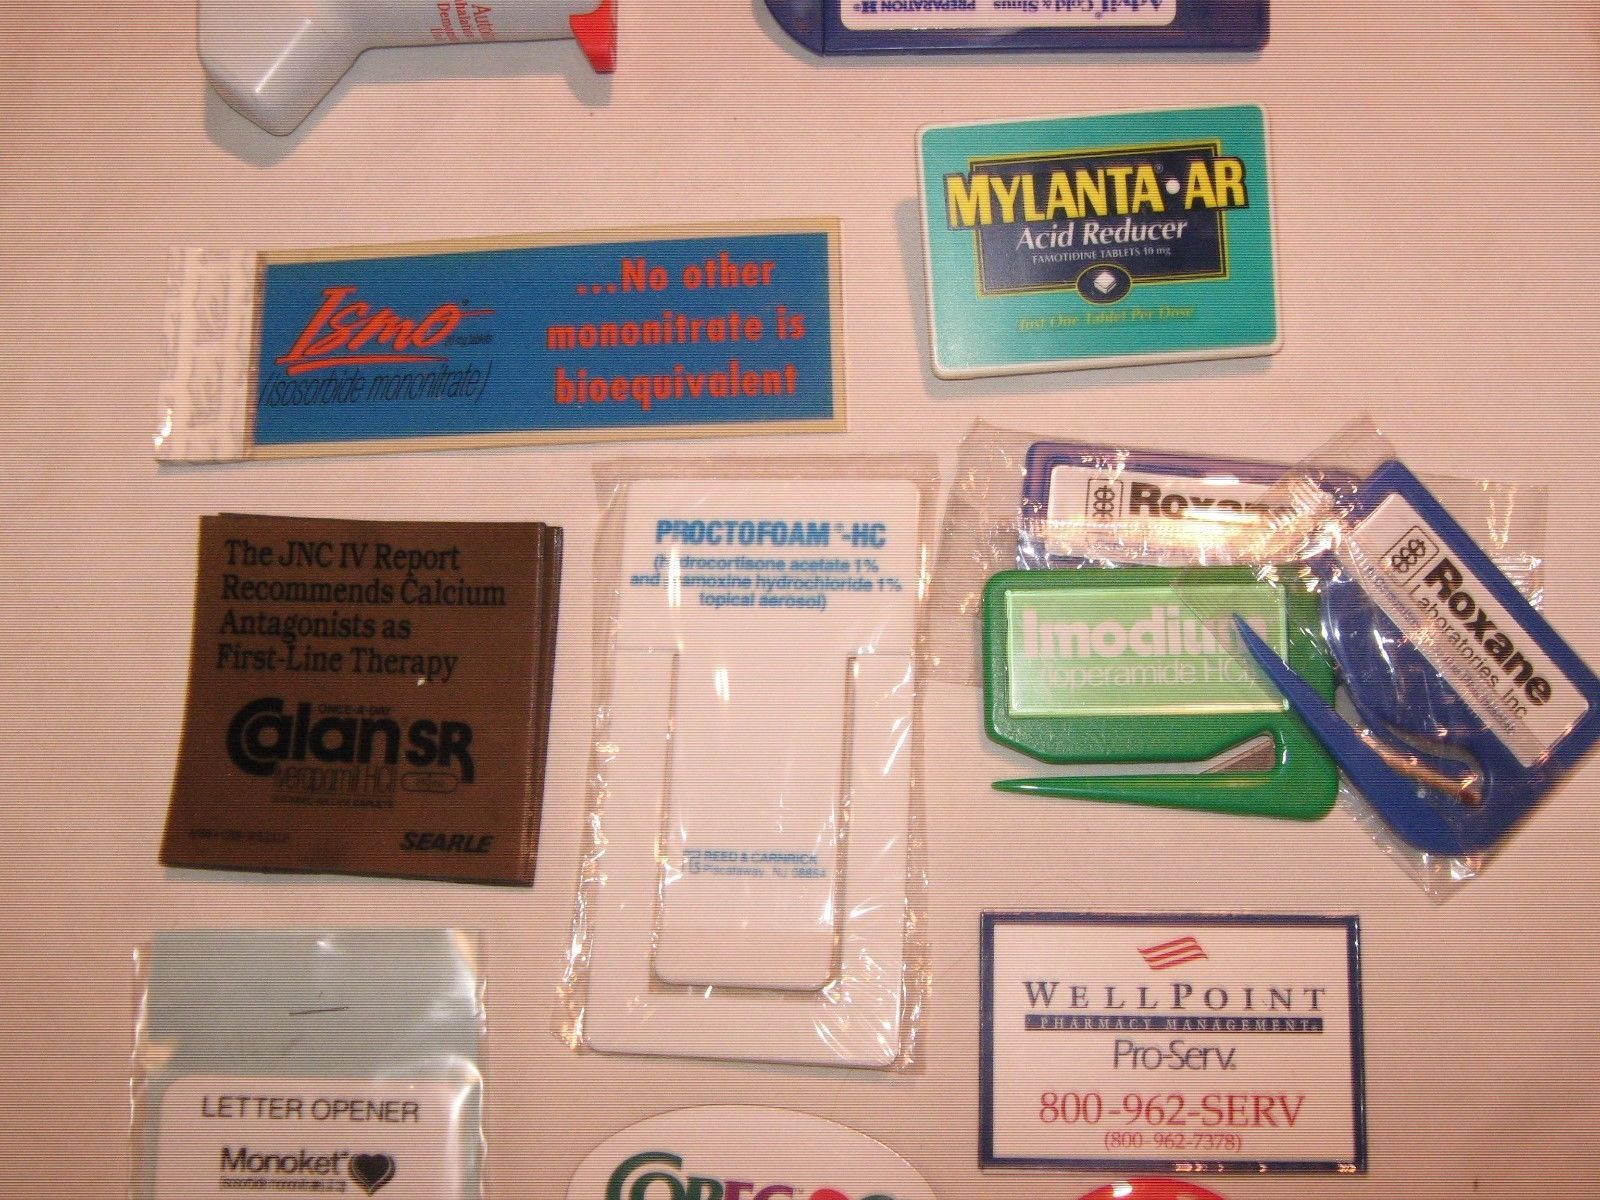 Rx, Pharmacy Promotional Items, Mixed Lot image 4